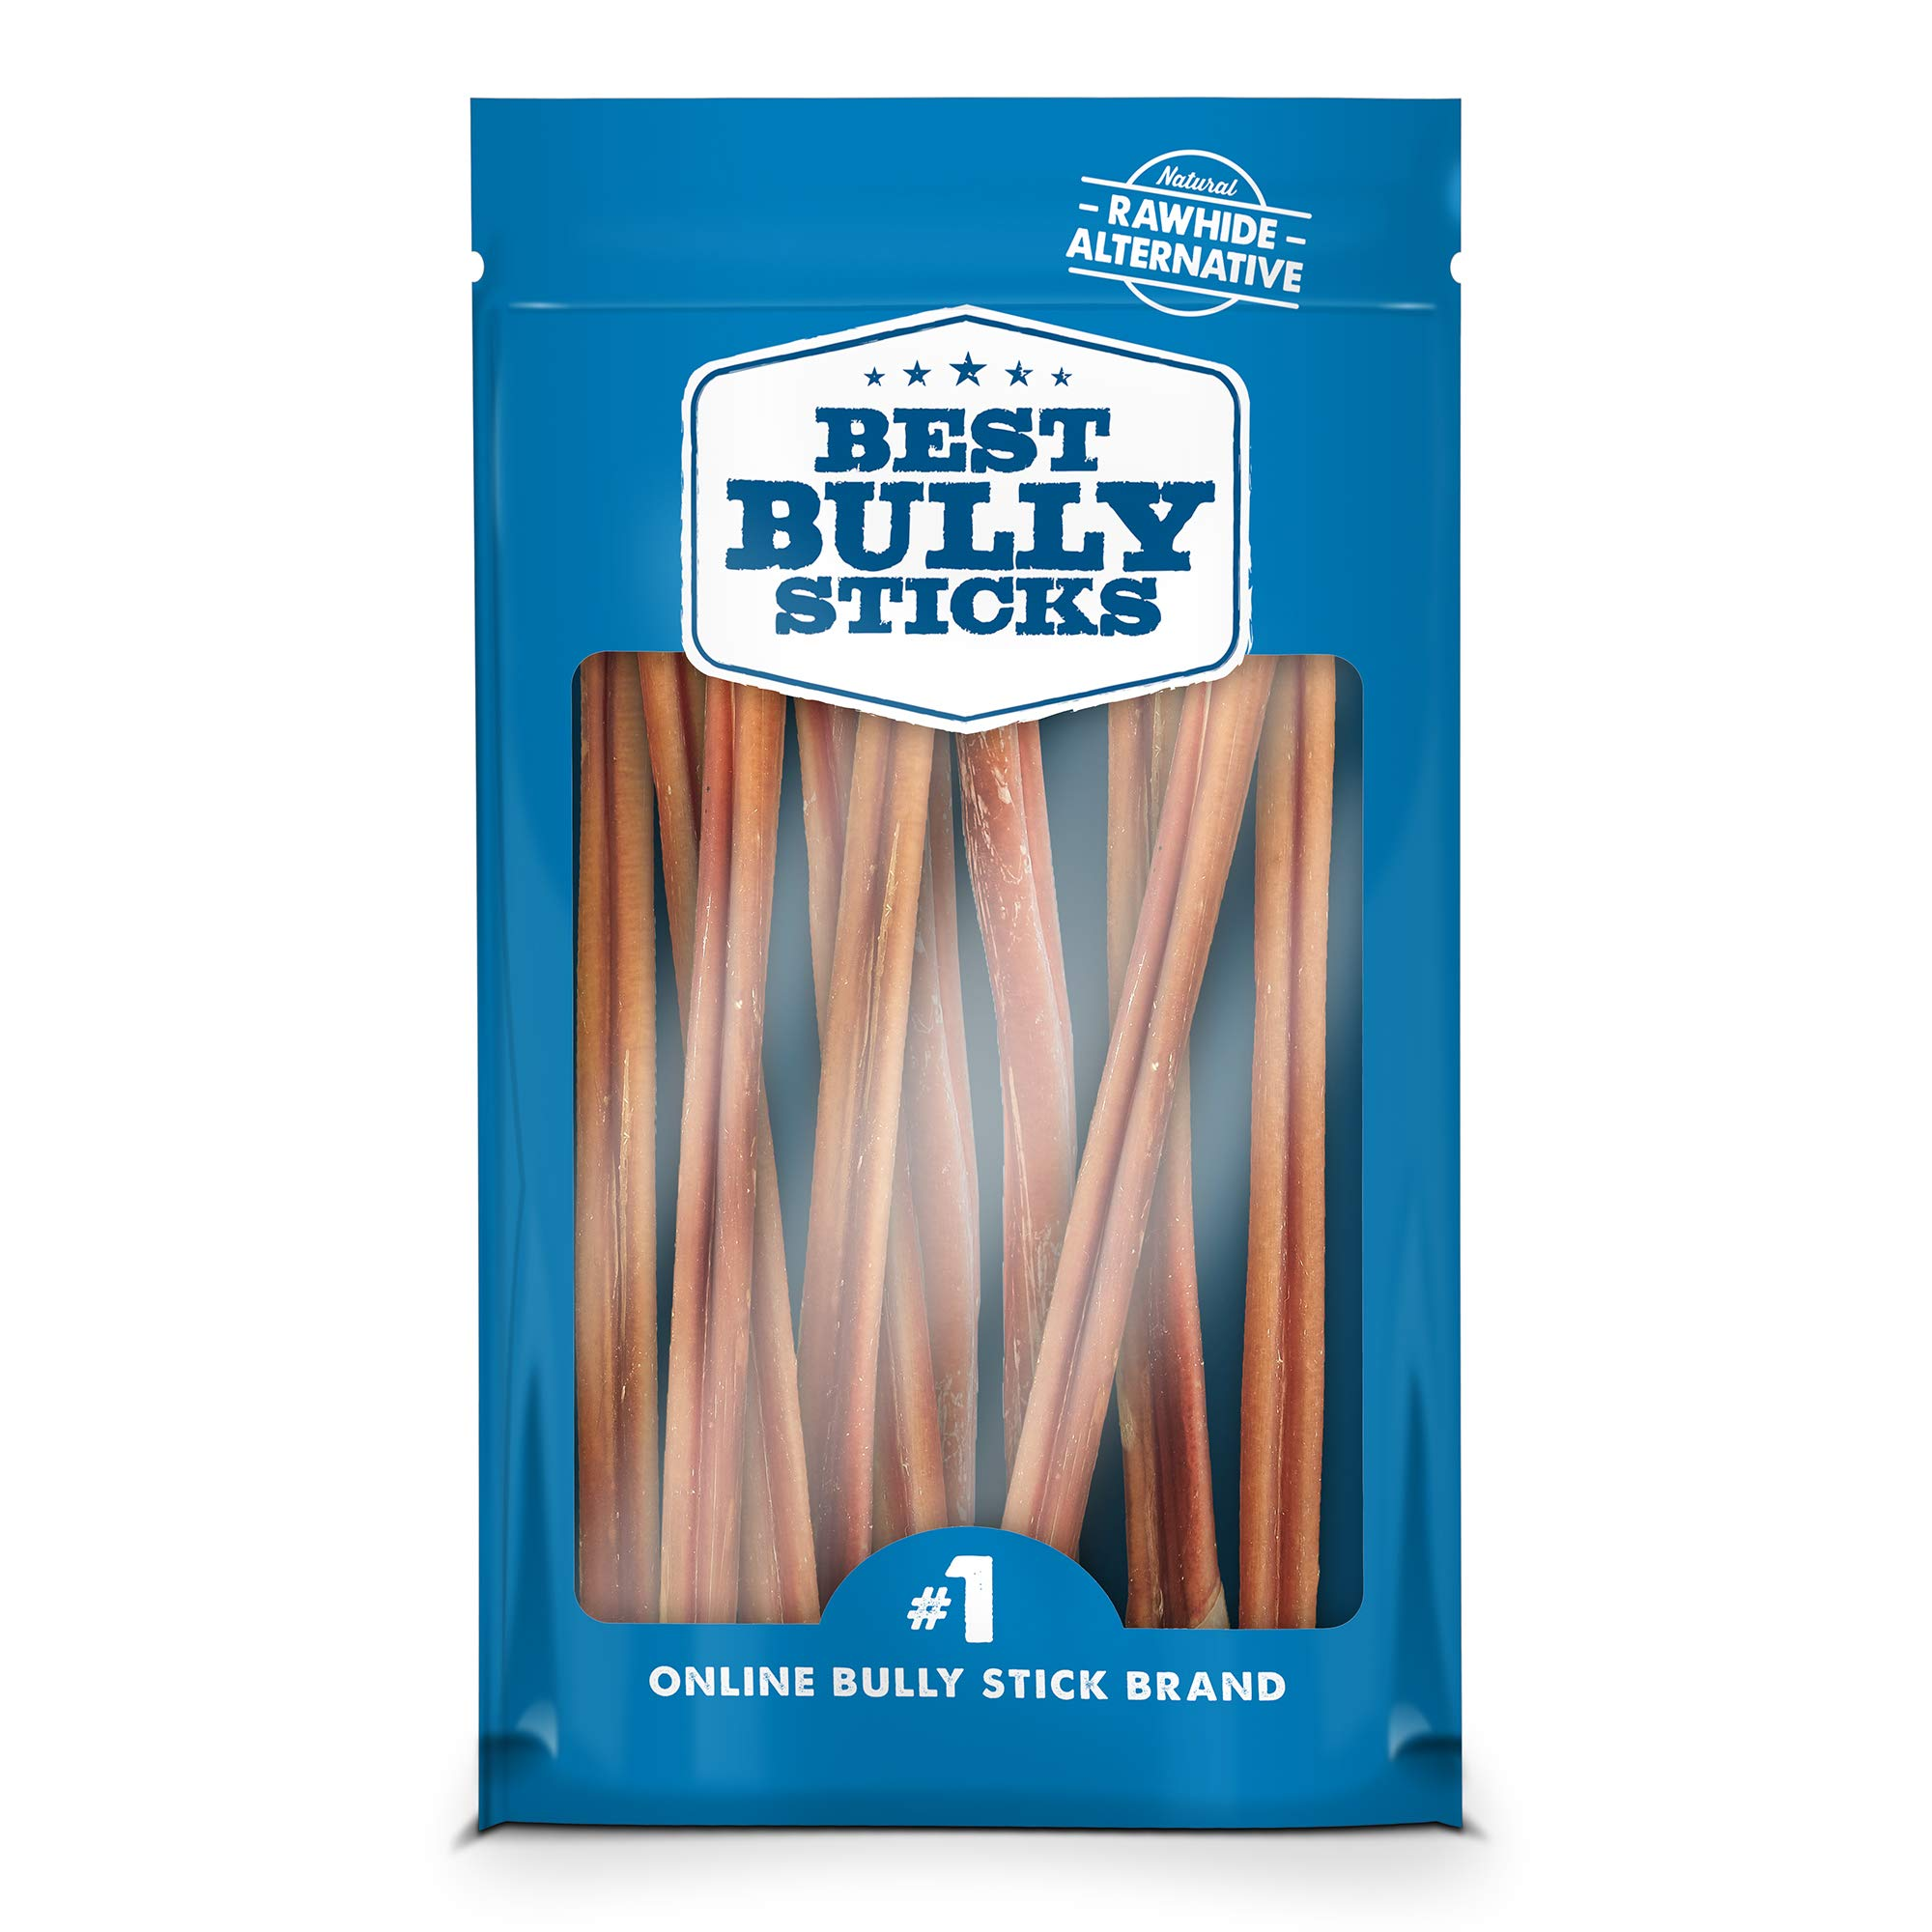 Best Bully Sticks USA 12-inch Bully Sticks Dog Chews (10 Pack) - Made in USA, All-Natural, Grass-Fed, Free-Range, Single-Ingredient, 100% Beef